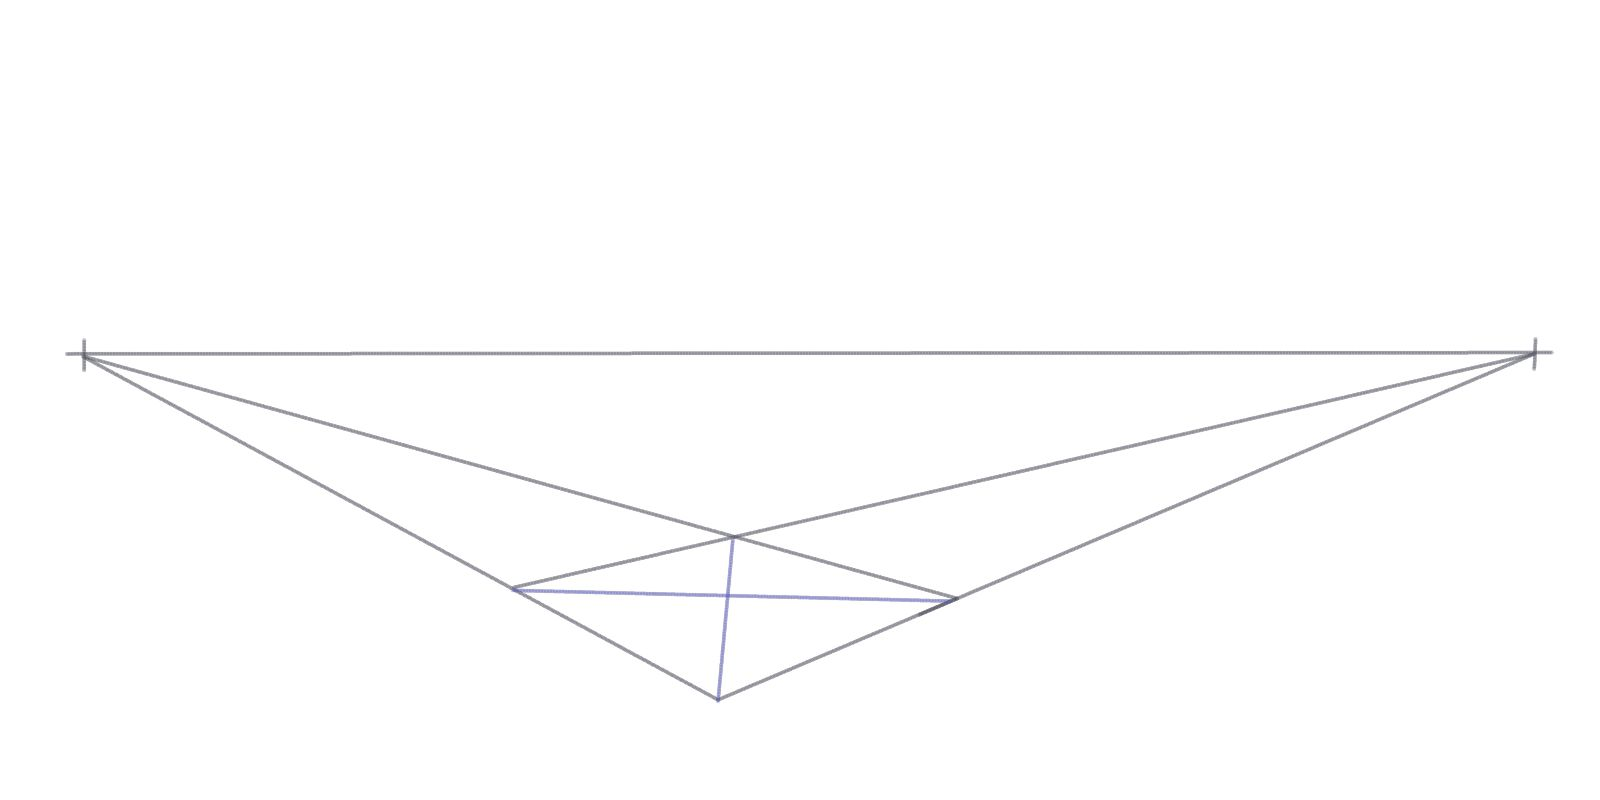 Draw A 3d Pyramid In Perspective